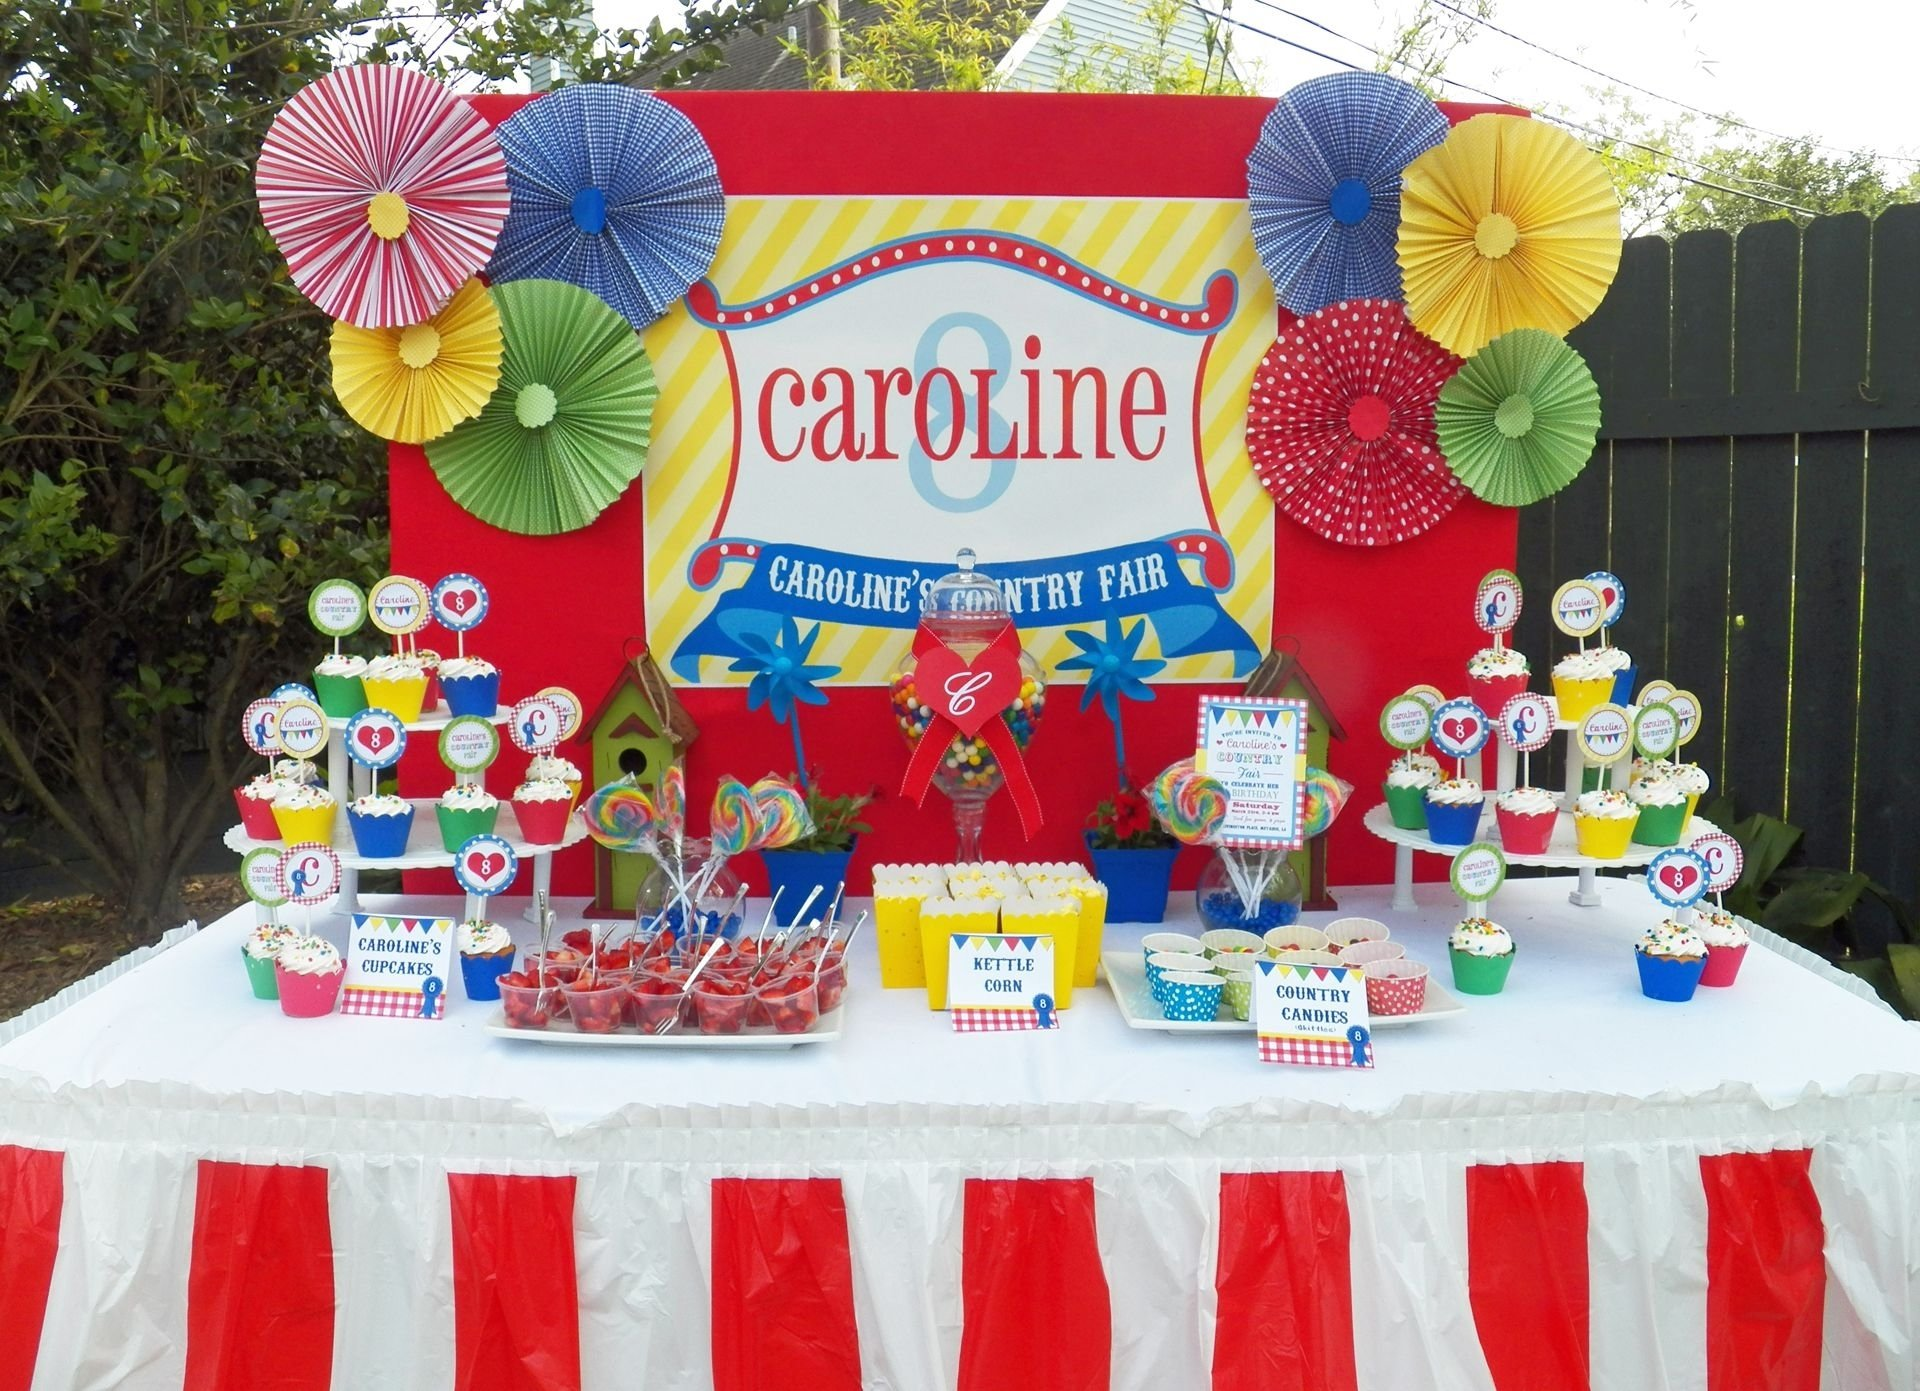 10 Most Popular Carnival Party Ideas For Adults red and blue gingham table cloths burlap covered potted plants 2020